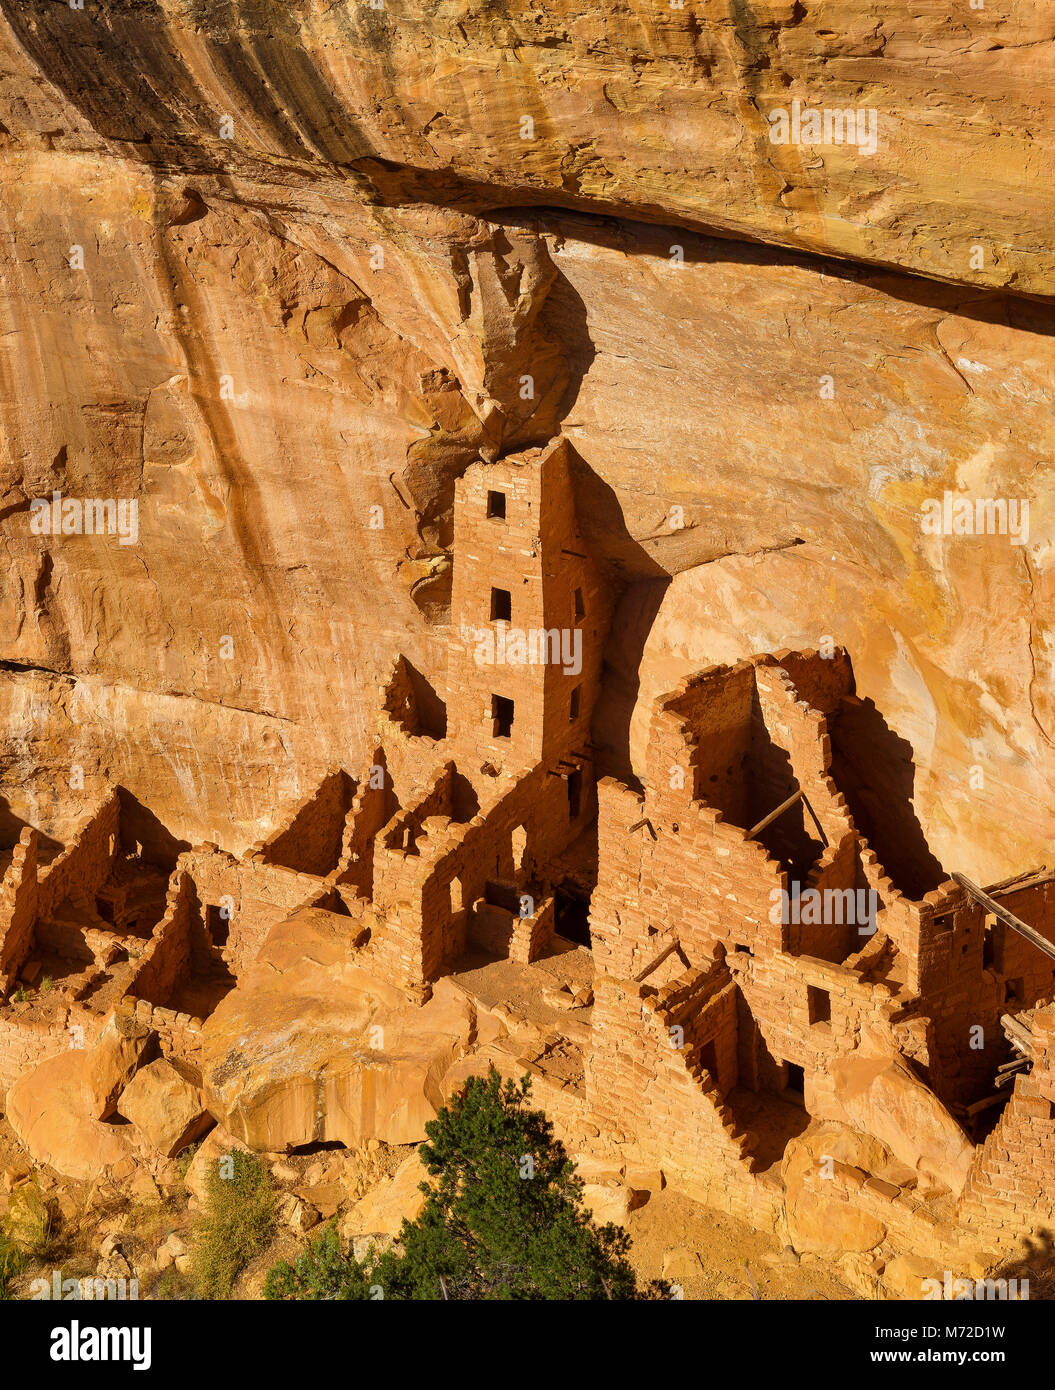 Square Tower House Ruin, Mesa Verde National Park, Ute Indian Reservation, Montezuma County, Colorado - Stock Image